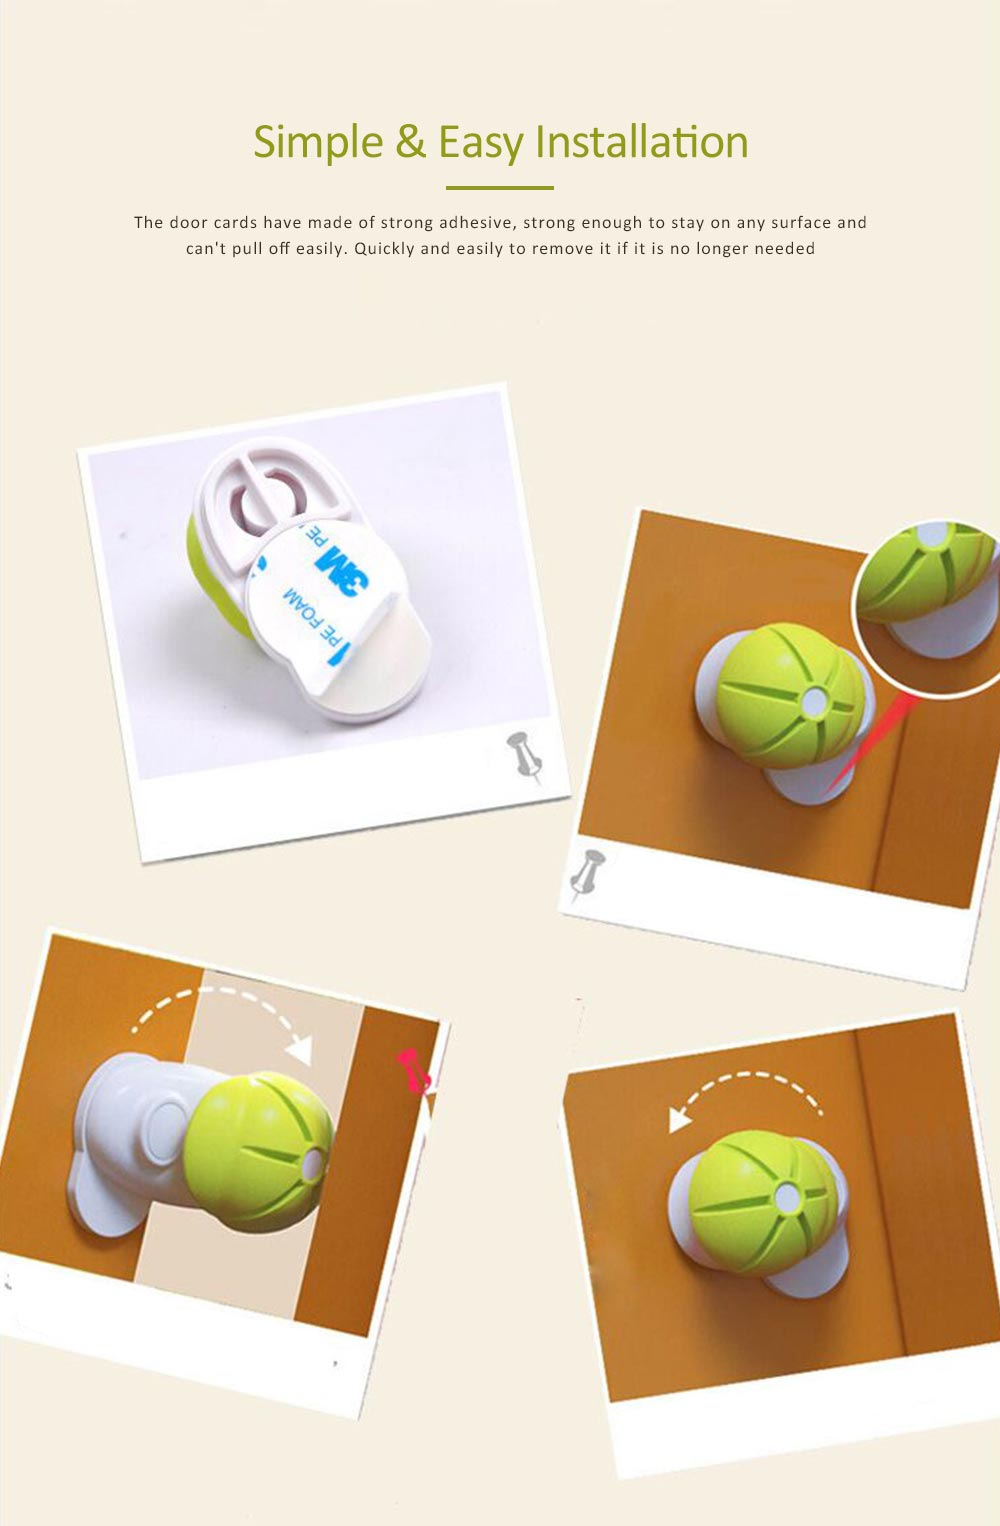 Silicone Door Stop Bumper, Door Cards with Baseball Design, Children Safety Door Stopper Tips 45mm 4